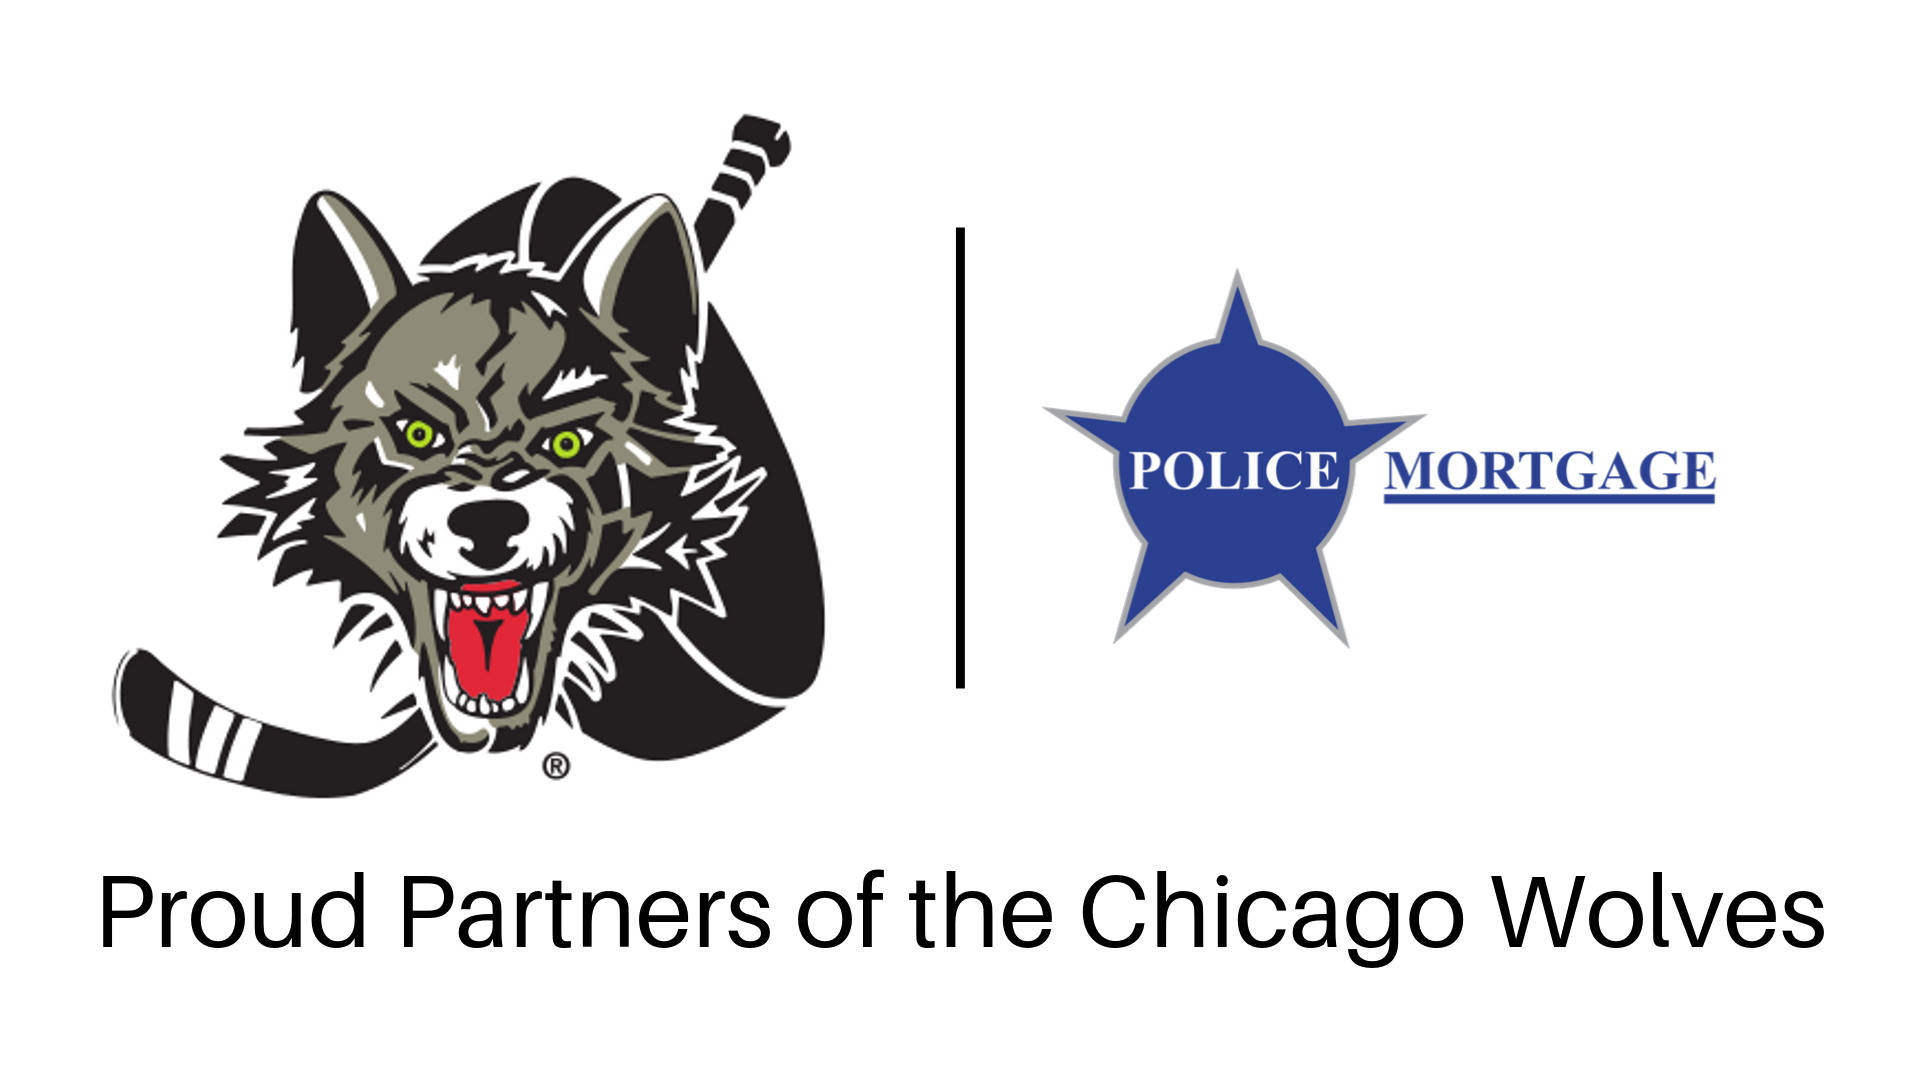 police-mortgage-chicago-wolves